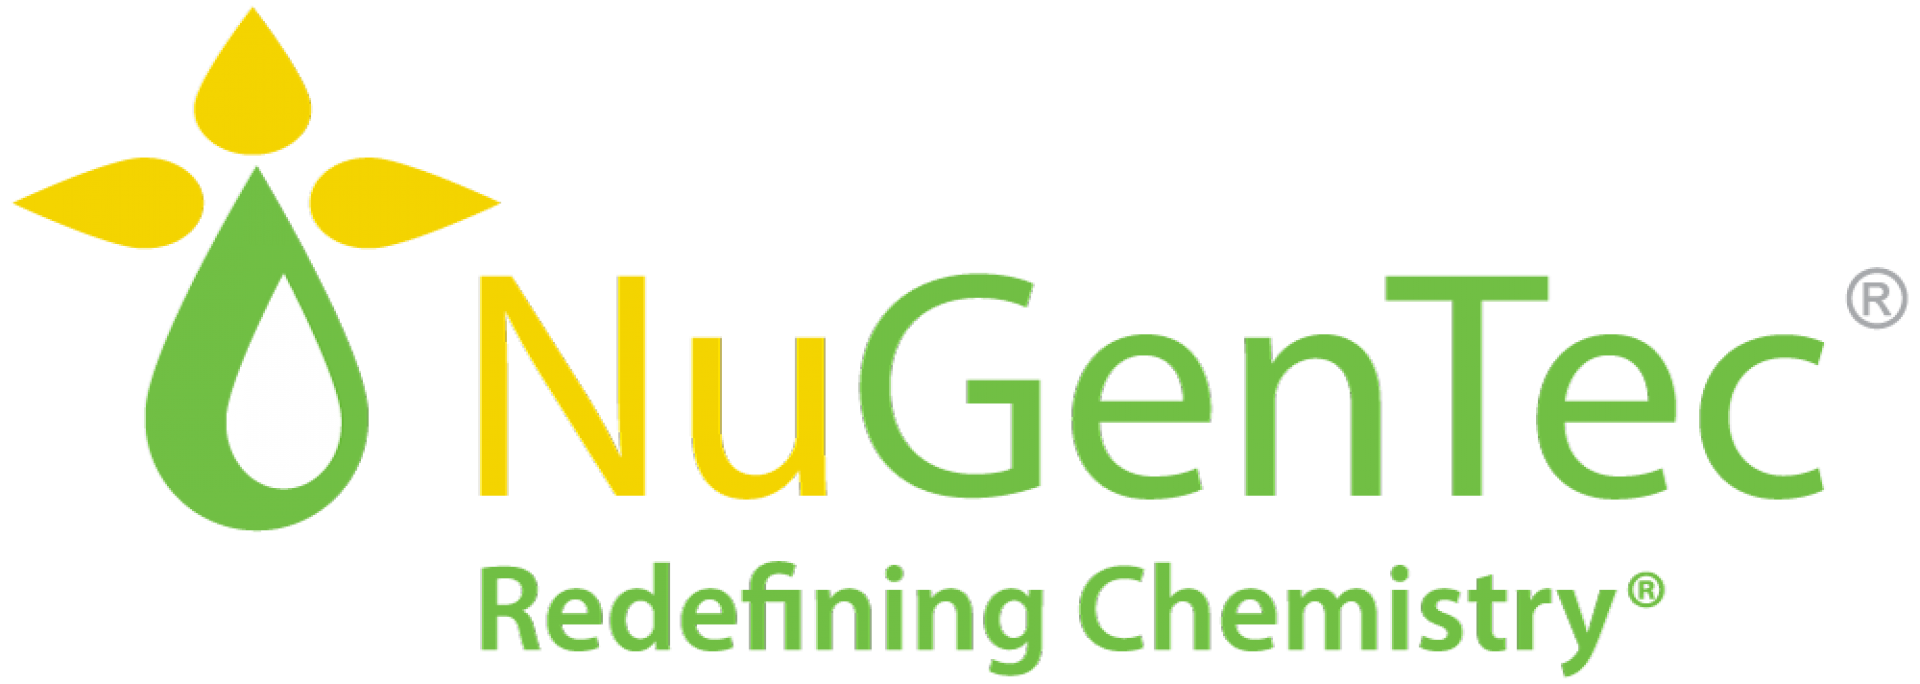 NuGenTec Logo with Slogan - Redefining Chemistry